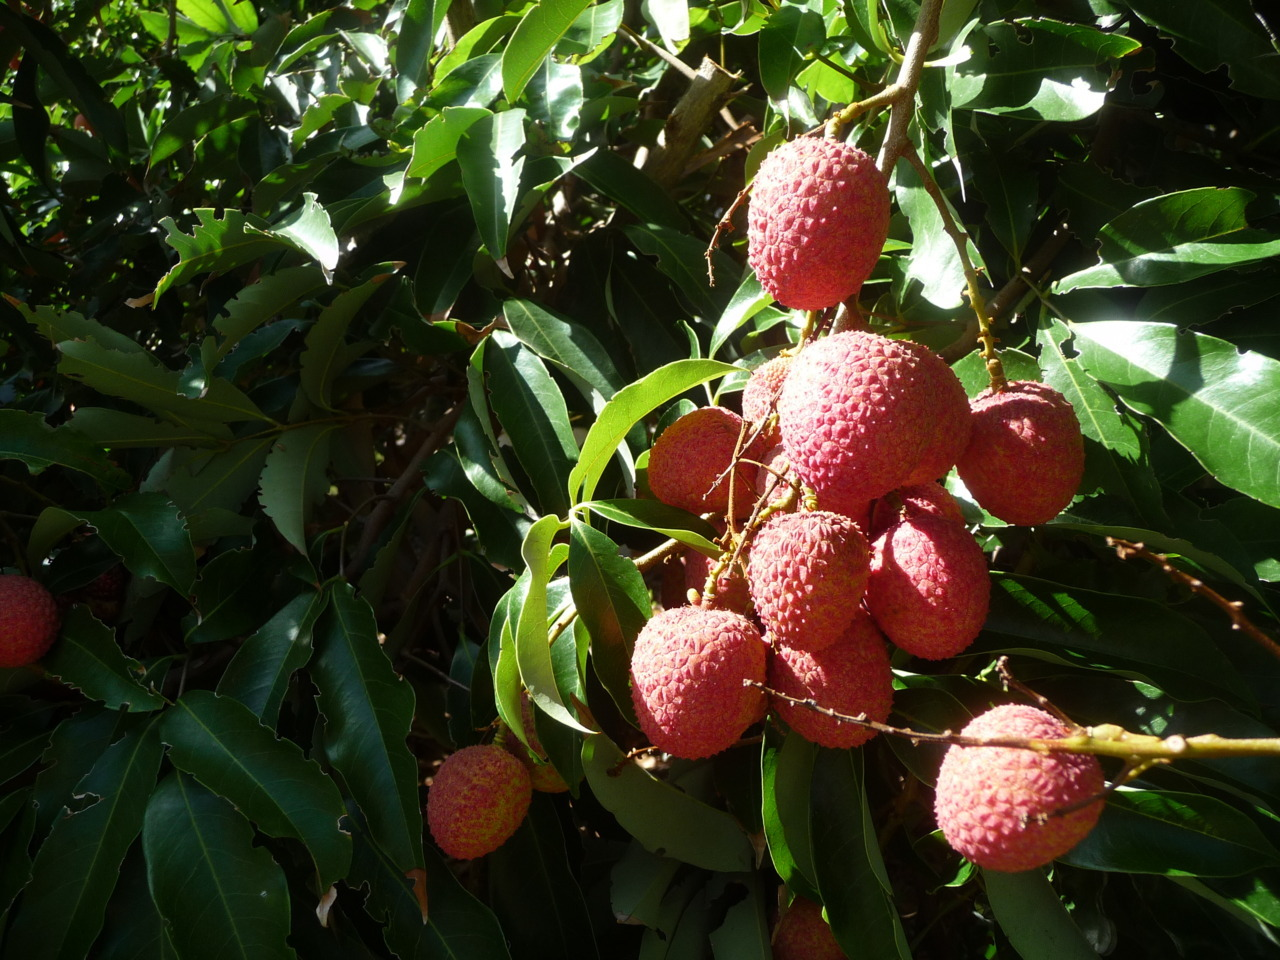 Last year's crop of lychee when I visited the parentals.  Signs of summer guys. As juicy and as succulent as you think they are, they were awesome after being chilled.